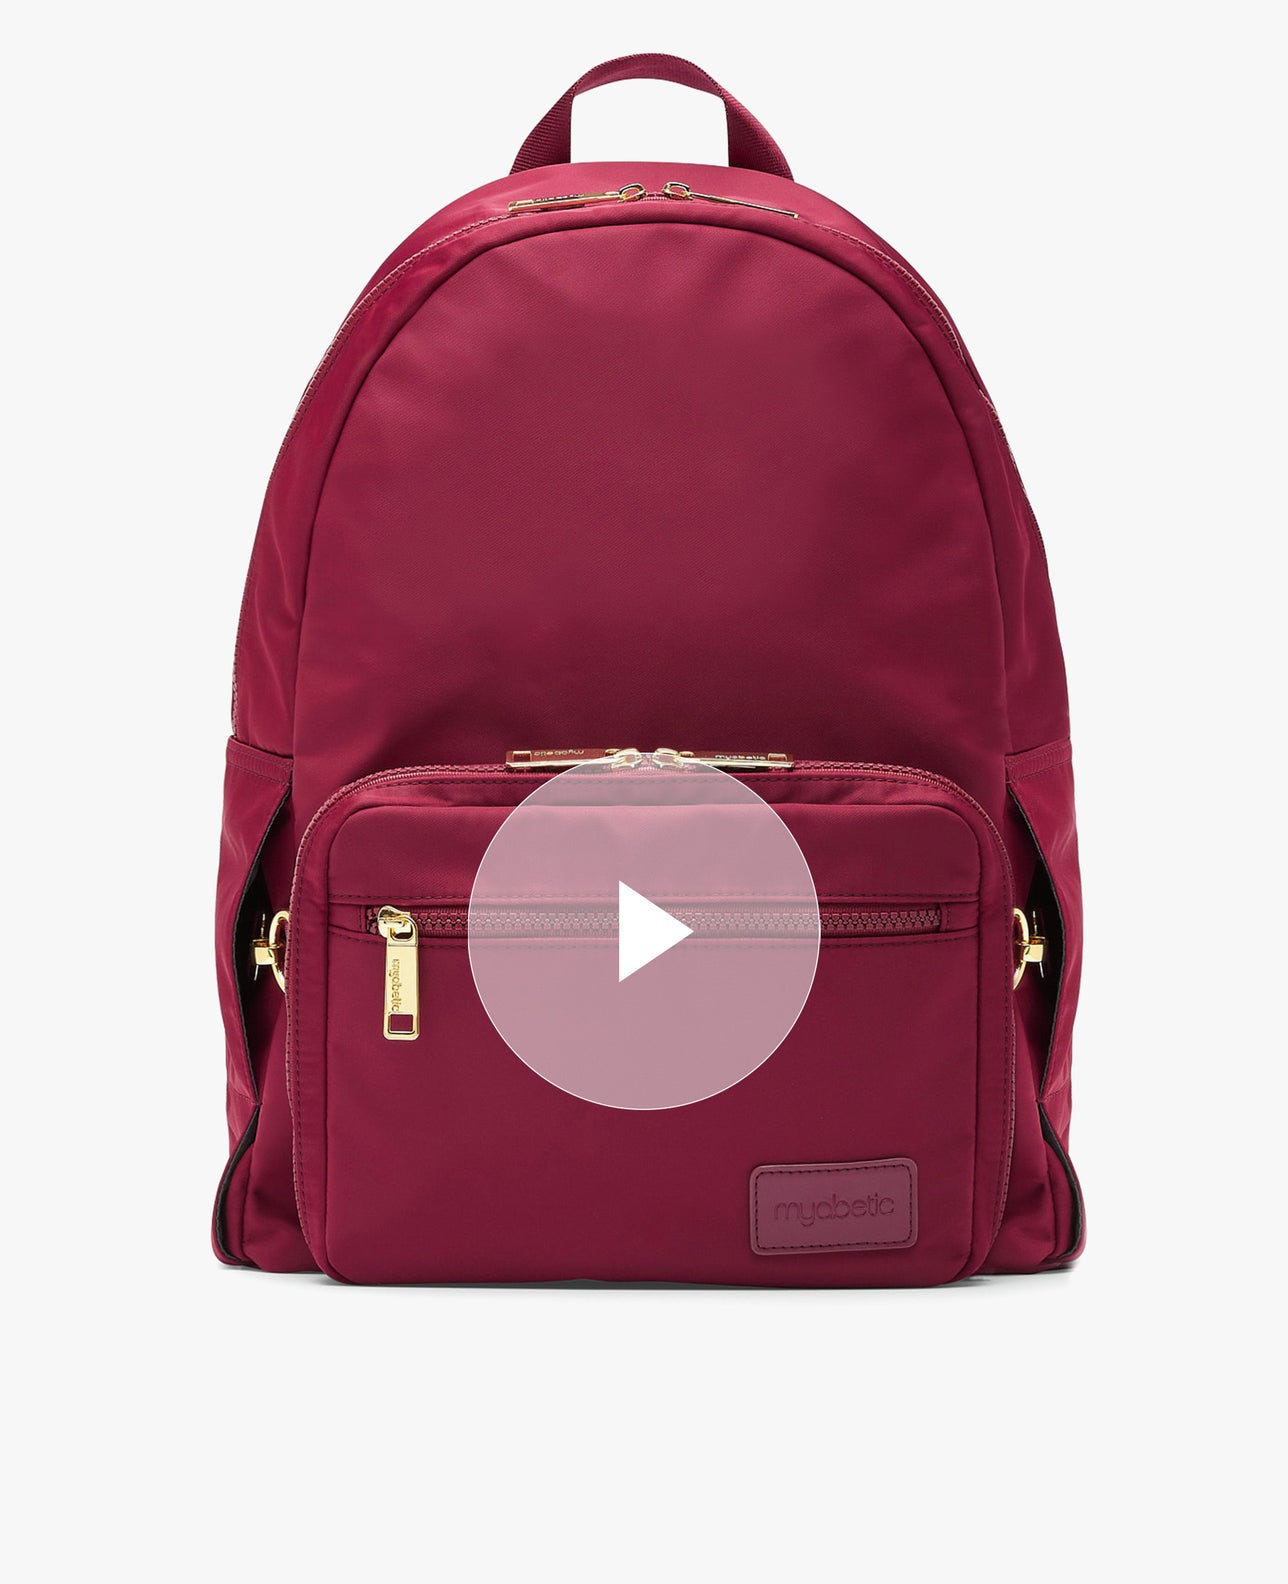 color:burgundy nylon  https://player.vimeo.com/video/525206309